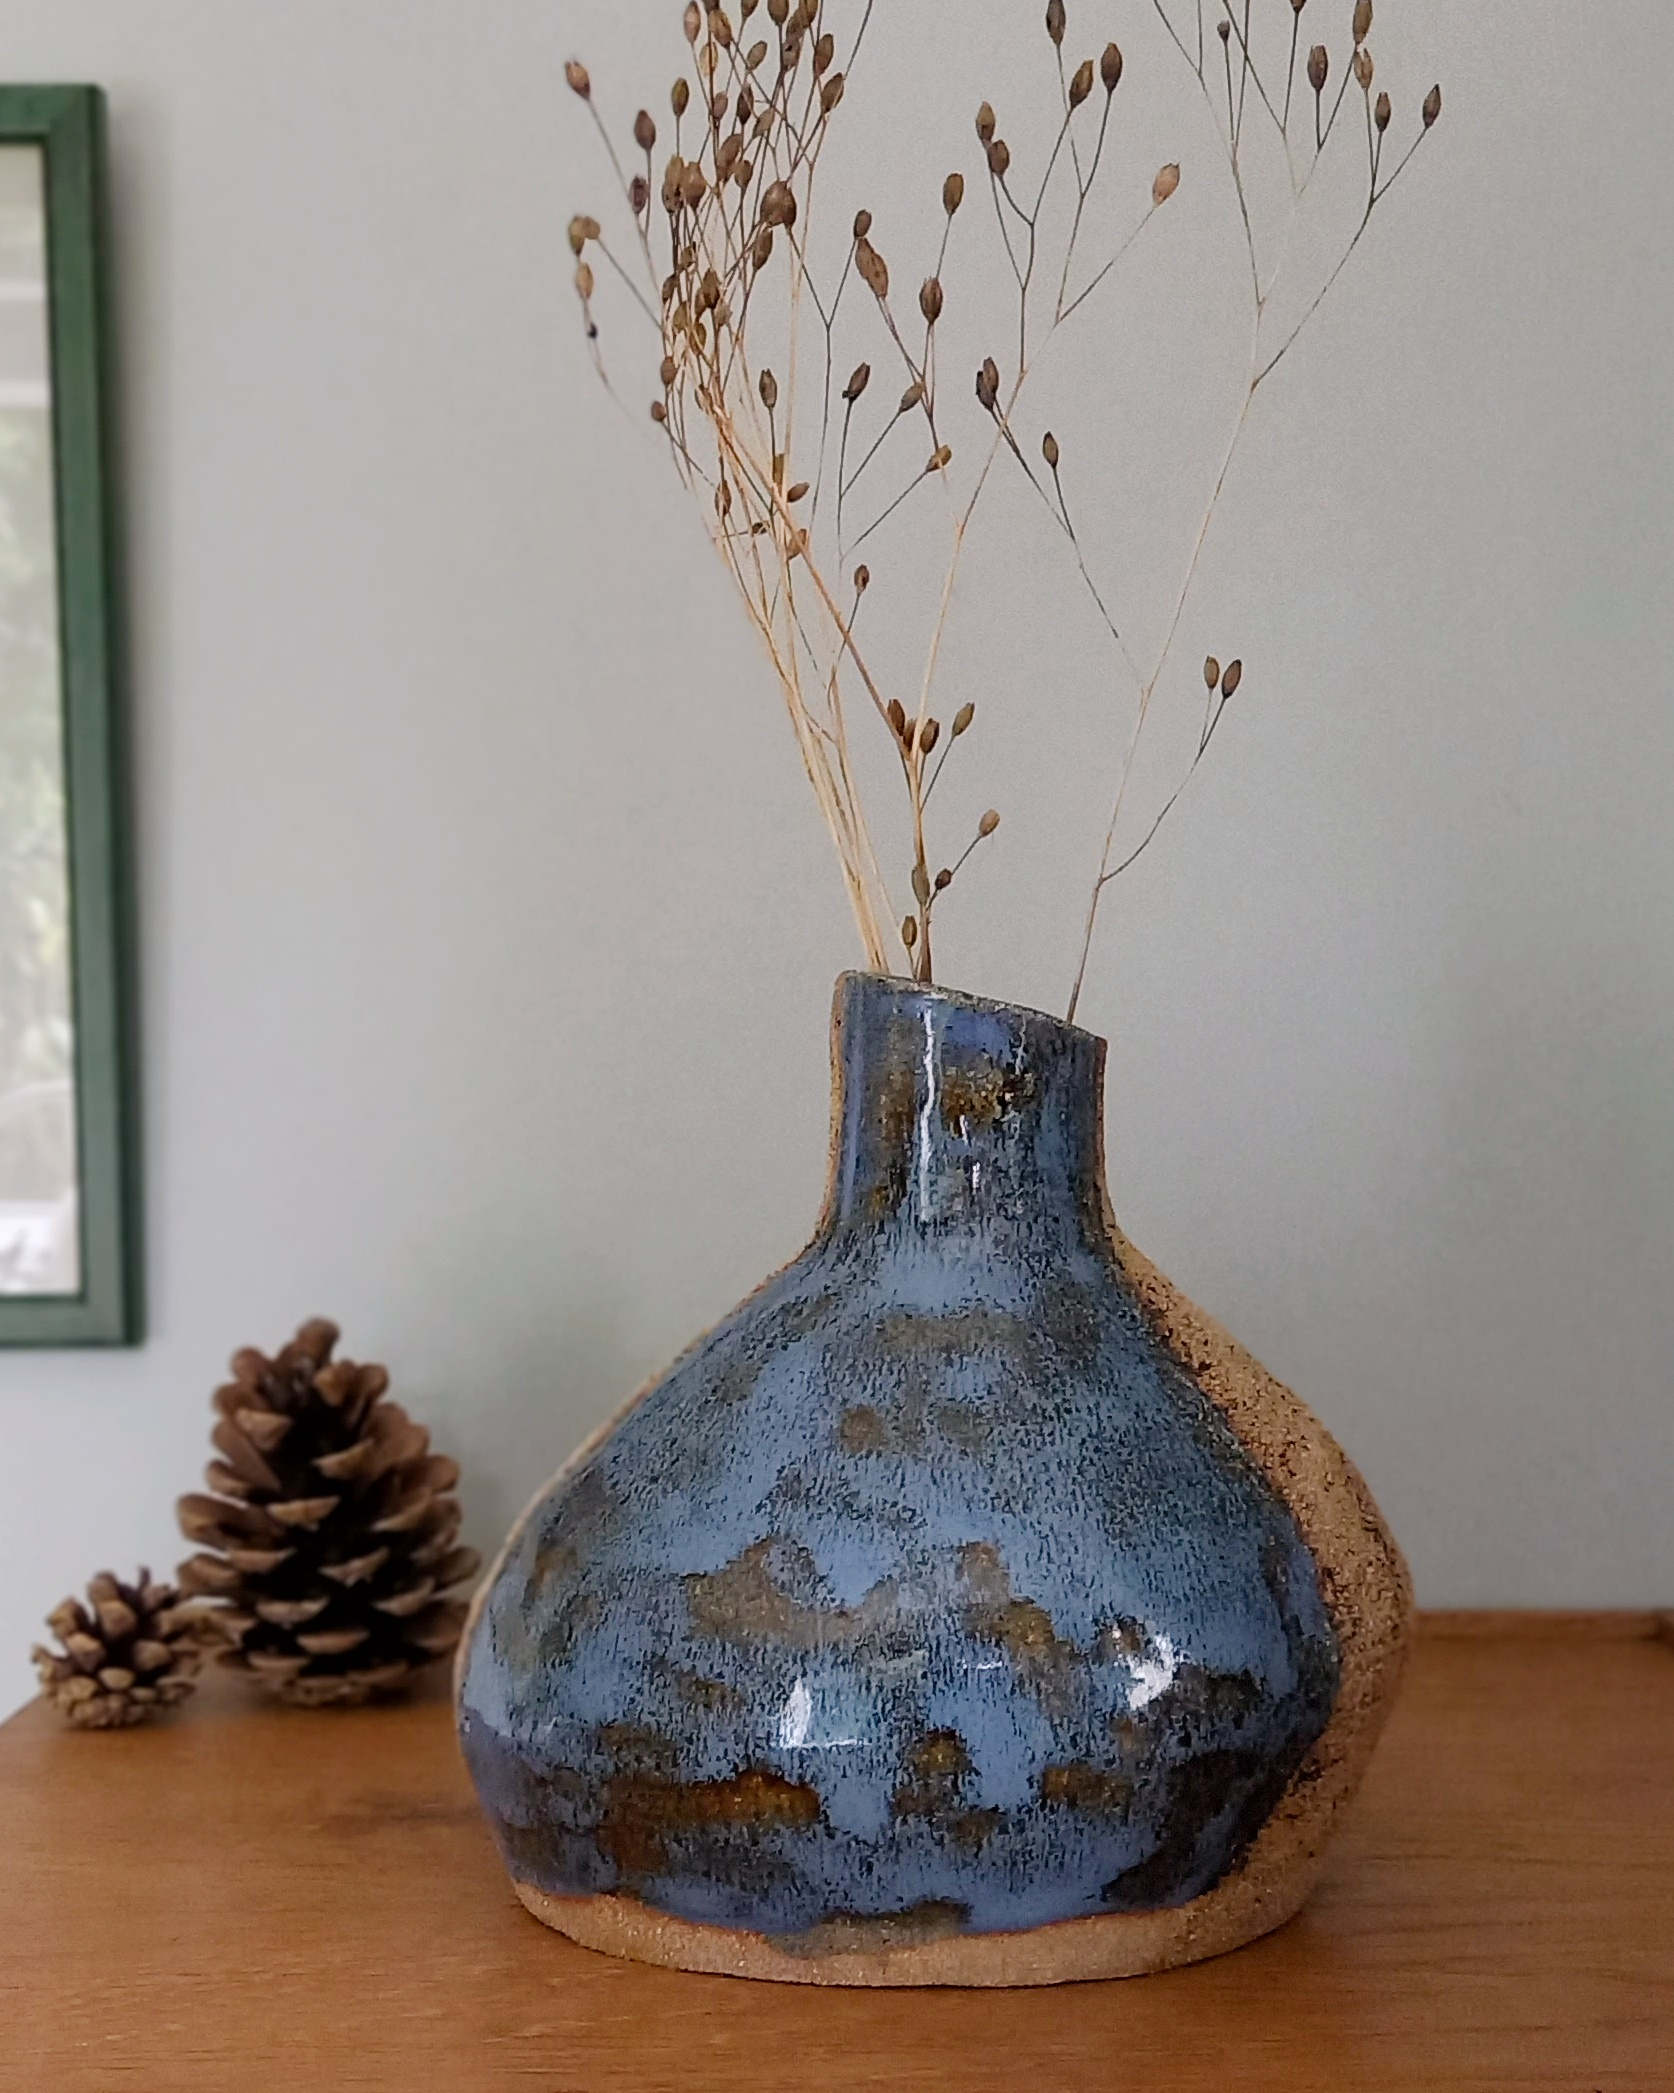 Ceramic vase with blue glaze and natural clay decoration